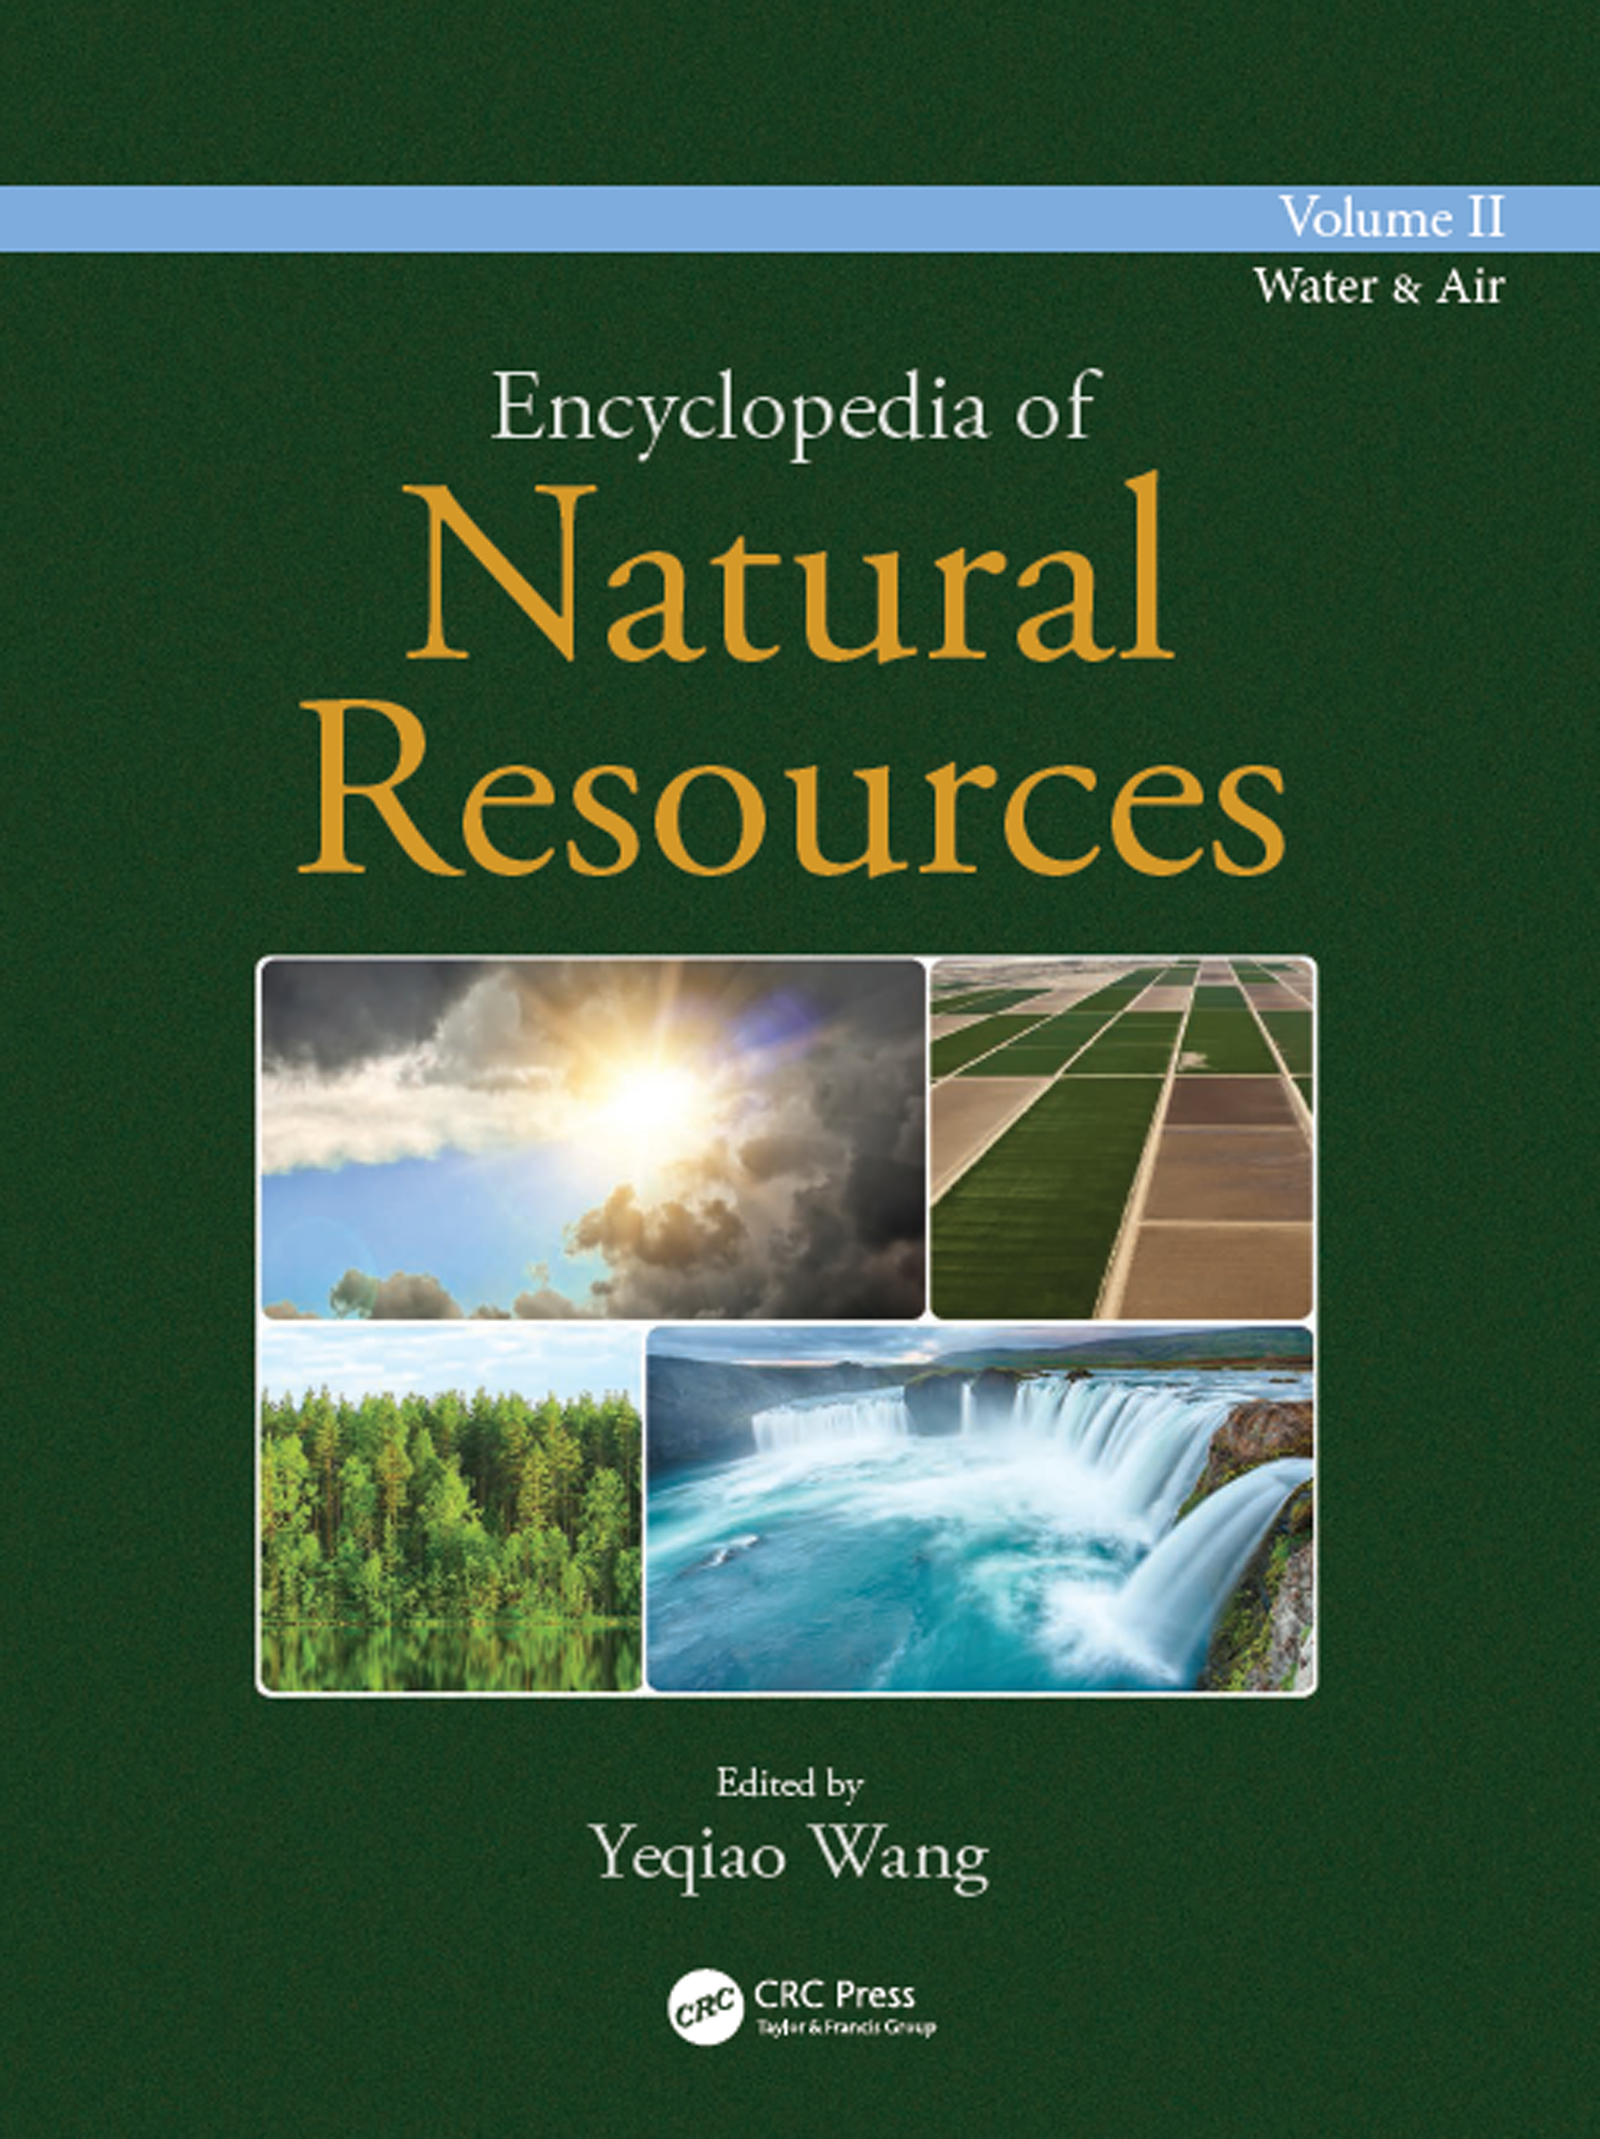 Encyclopedia of Natural Resources - Water and Air - Vol II book cover